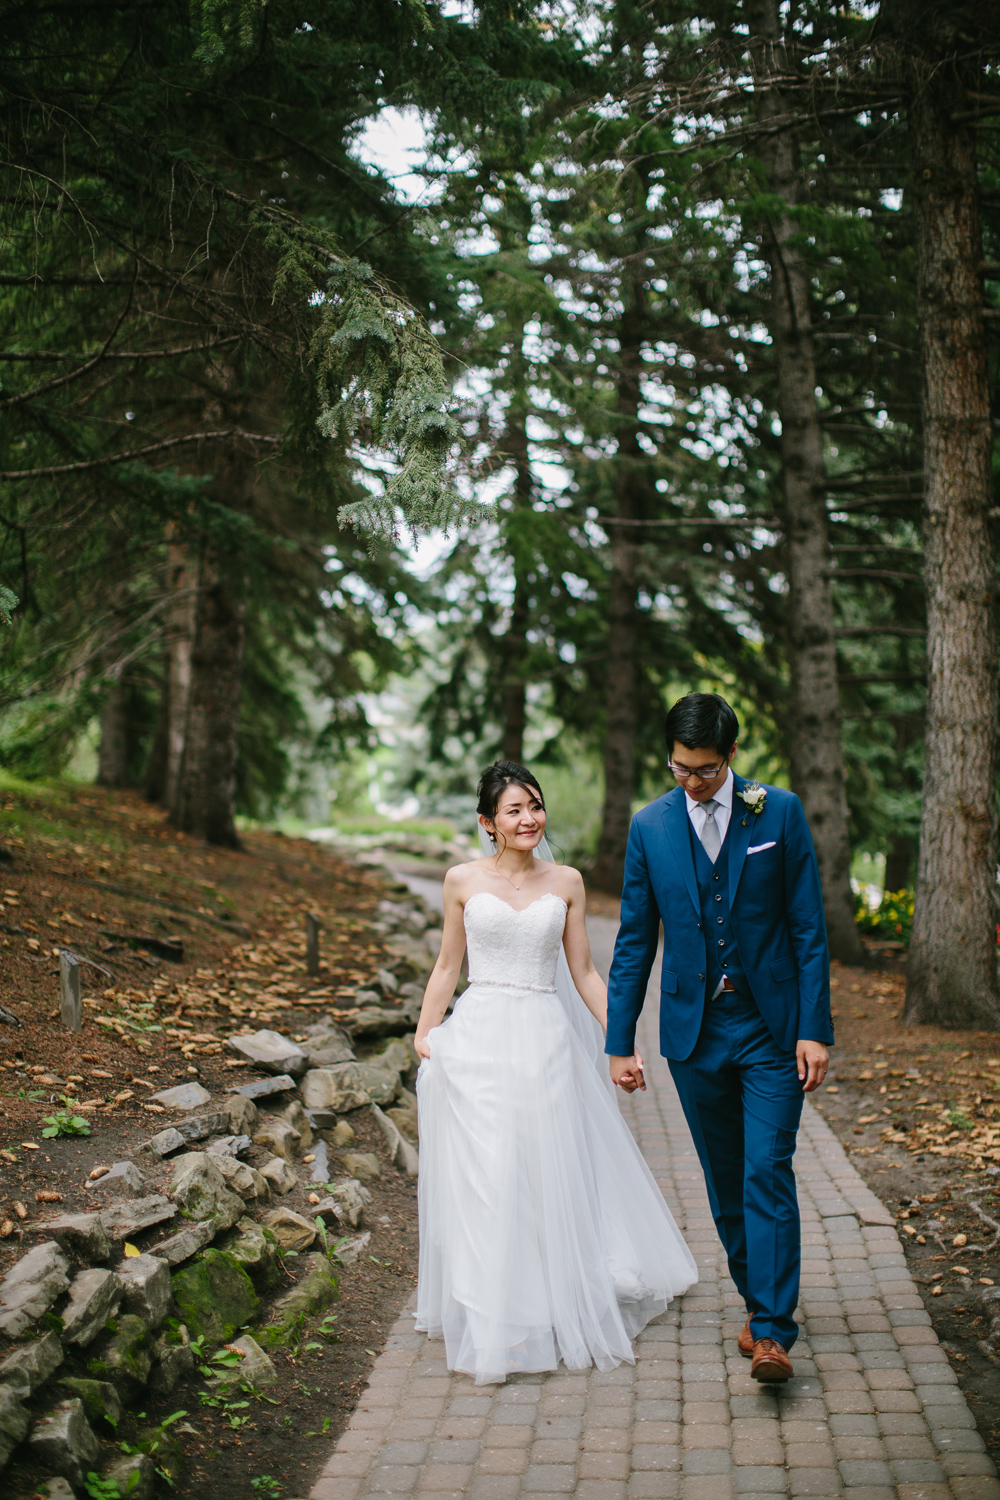 Confederation park calgary wedding venues